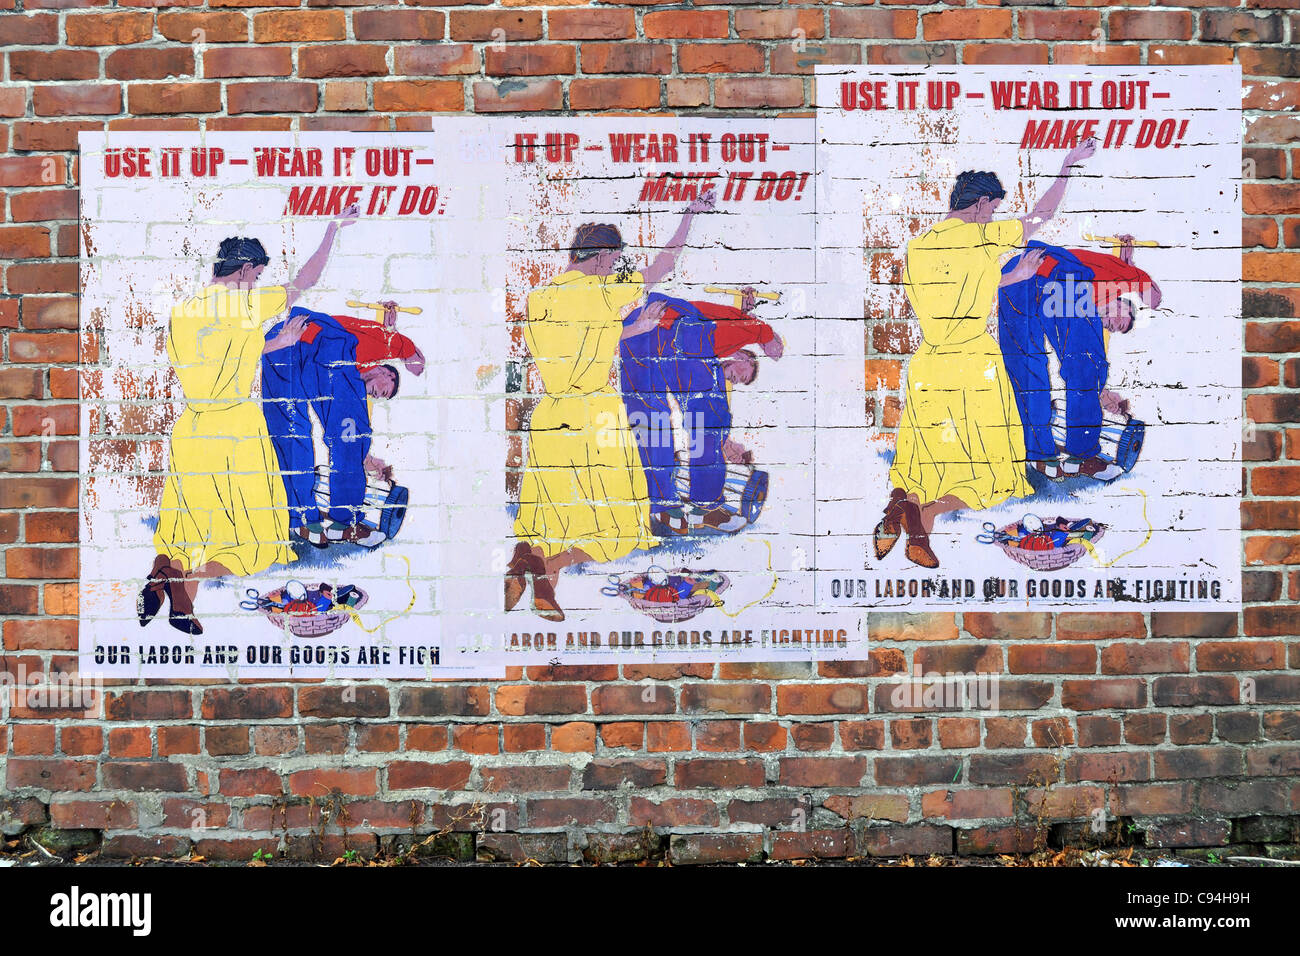 American WW2 Propaganda Posters on a brick wall - Stock Image